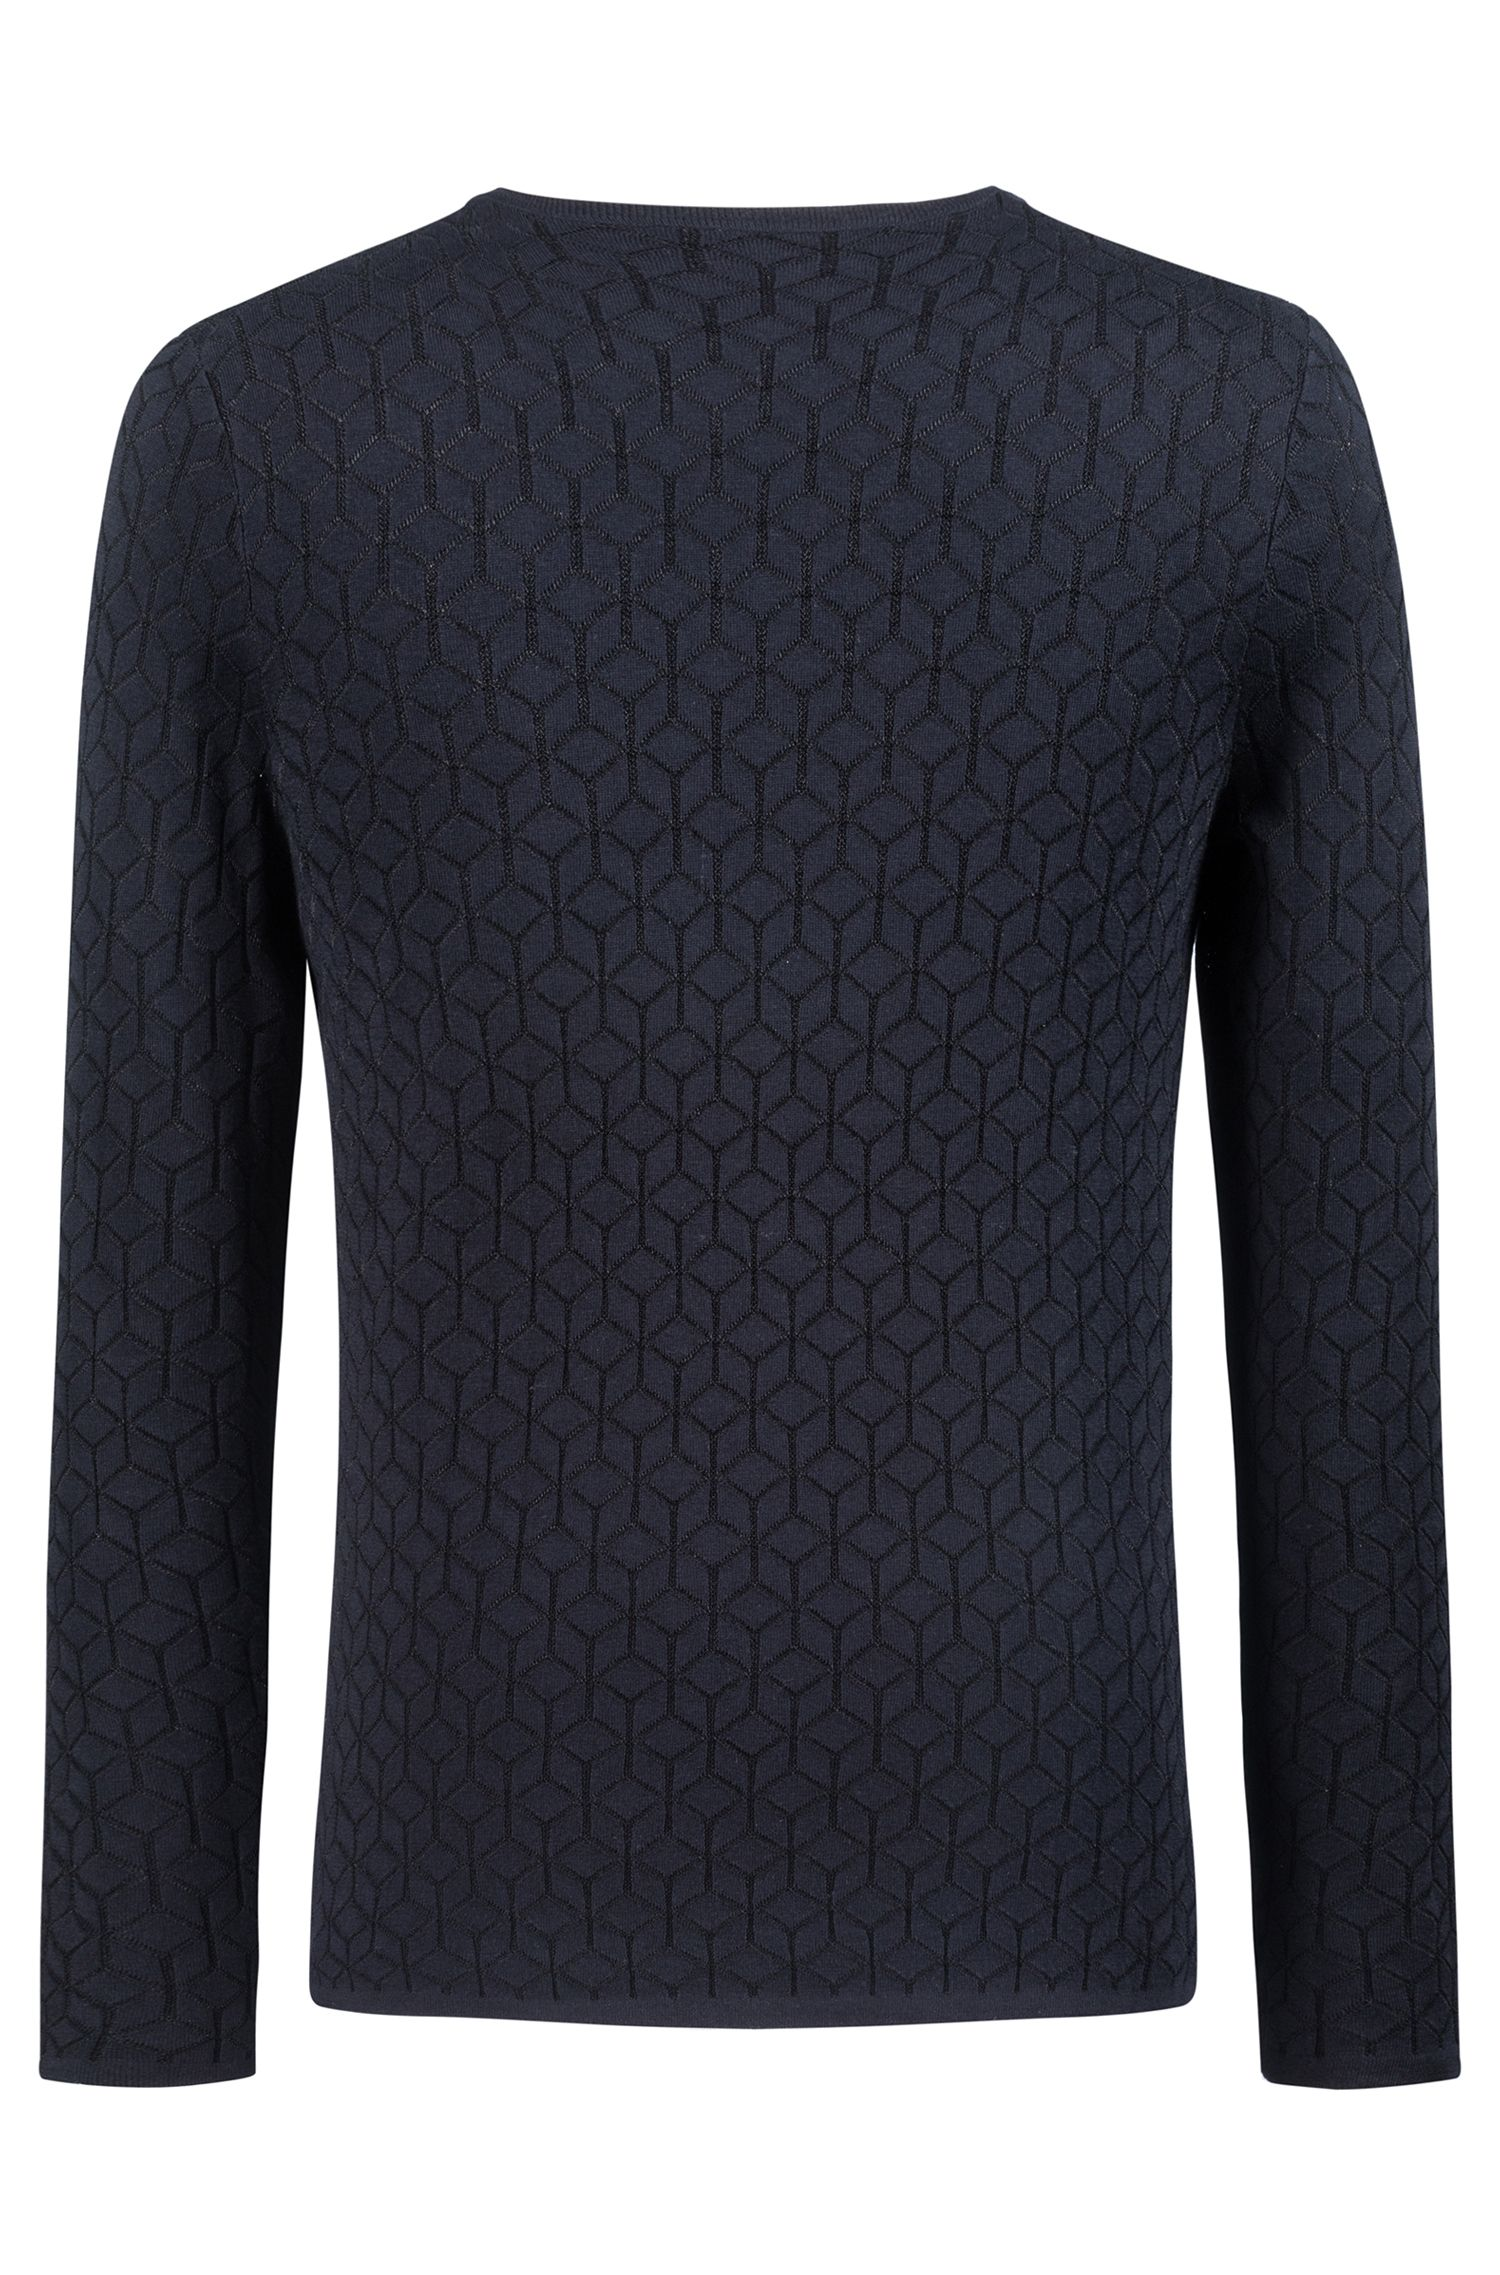 Slim-fit sweater in knitted jacquard with geometric pattern, Dark Blue